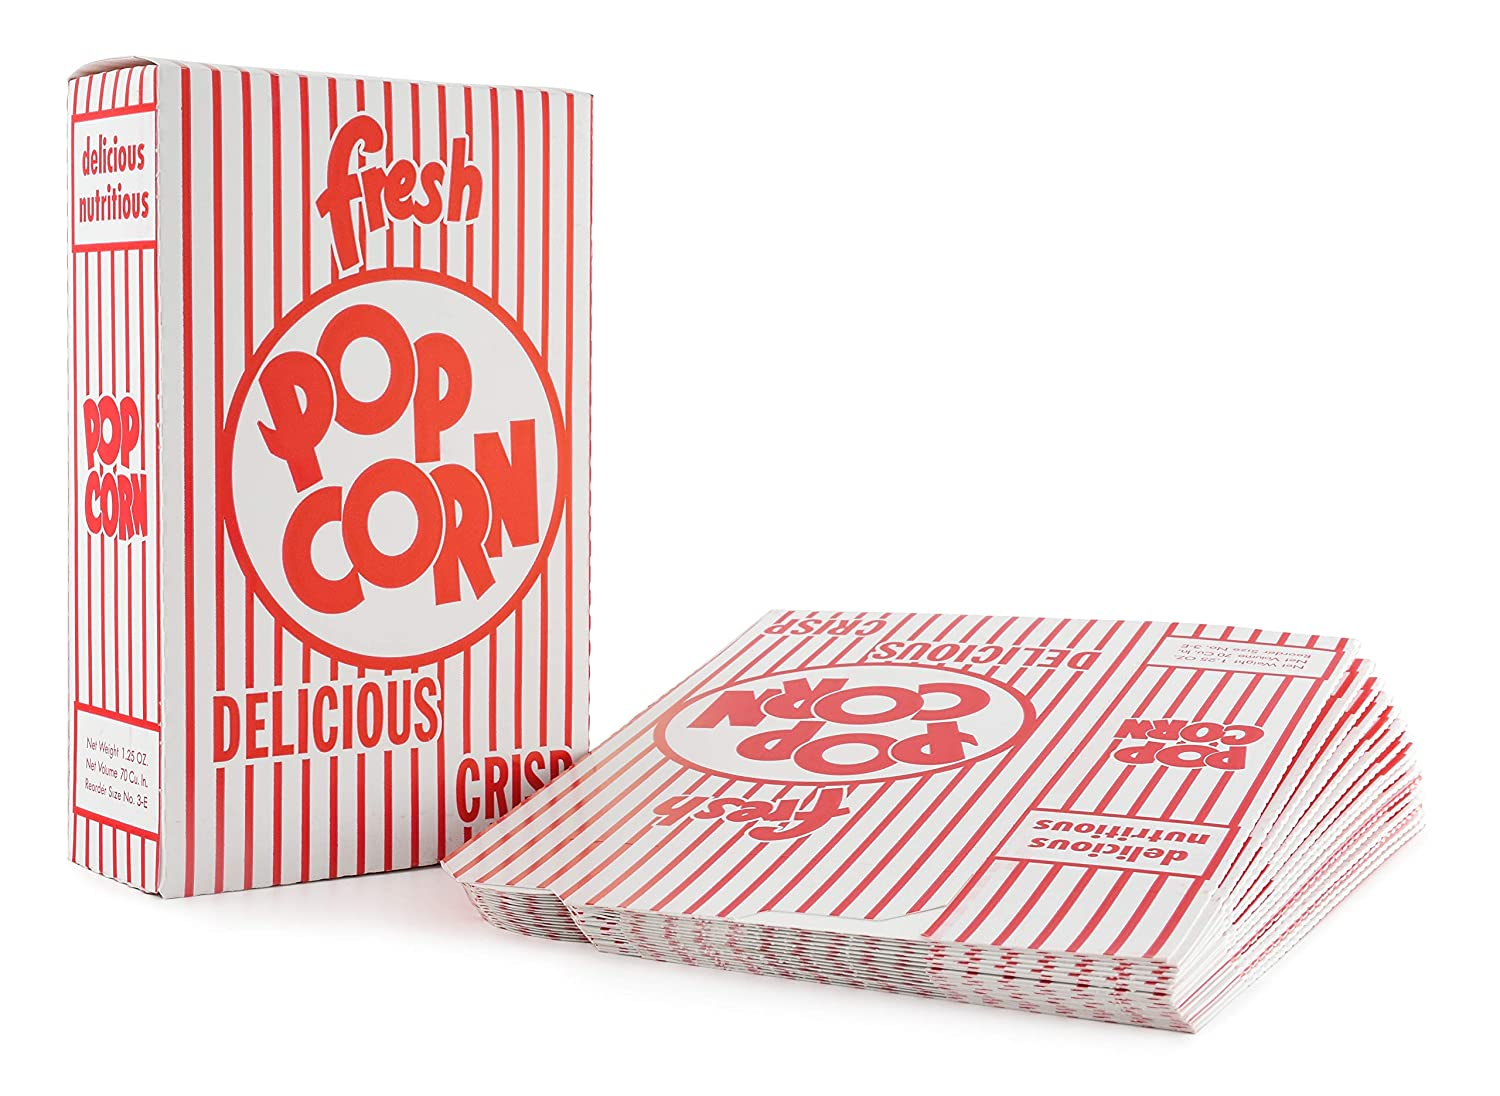 Snappy Popcorn 3-E Red and White 1.25 Boxes Close O Top Max 48% OFF Our shop OFFers the best service